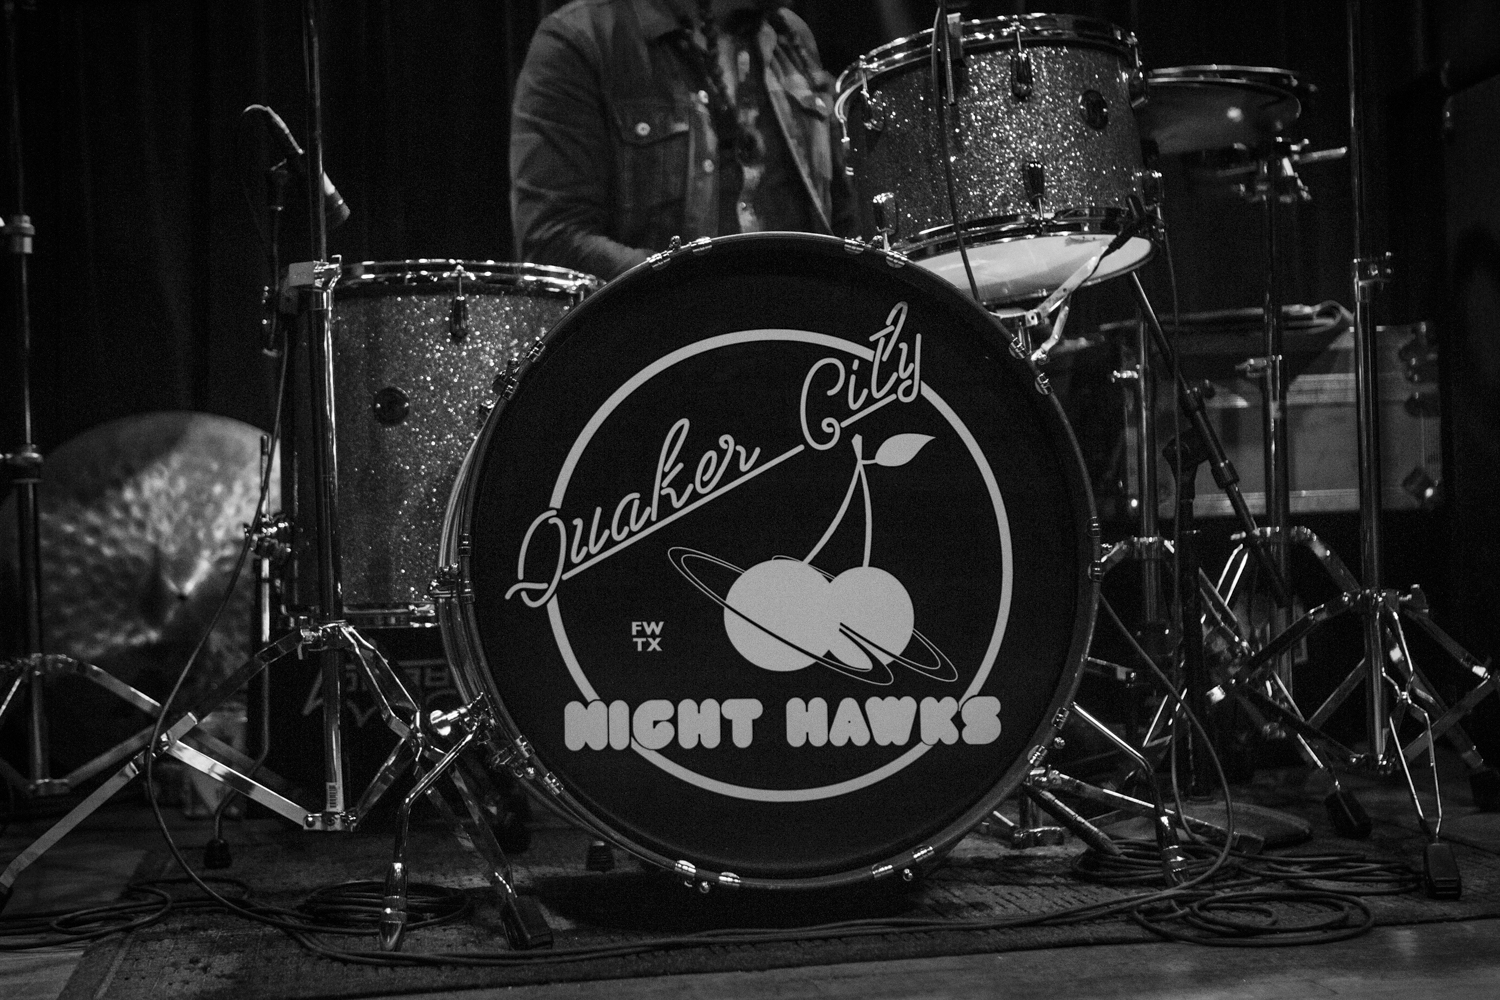 Quaker City Night Hawks set to hit the RMEF big stage, Haven Effect will get the party started at 8:30!